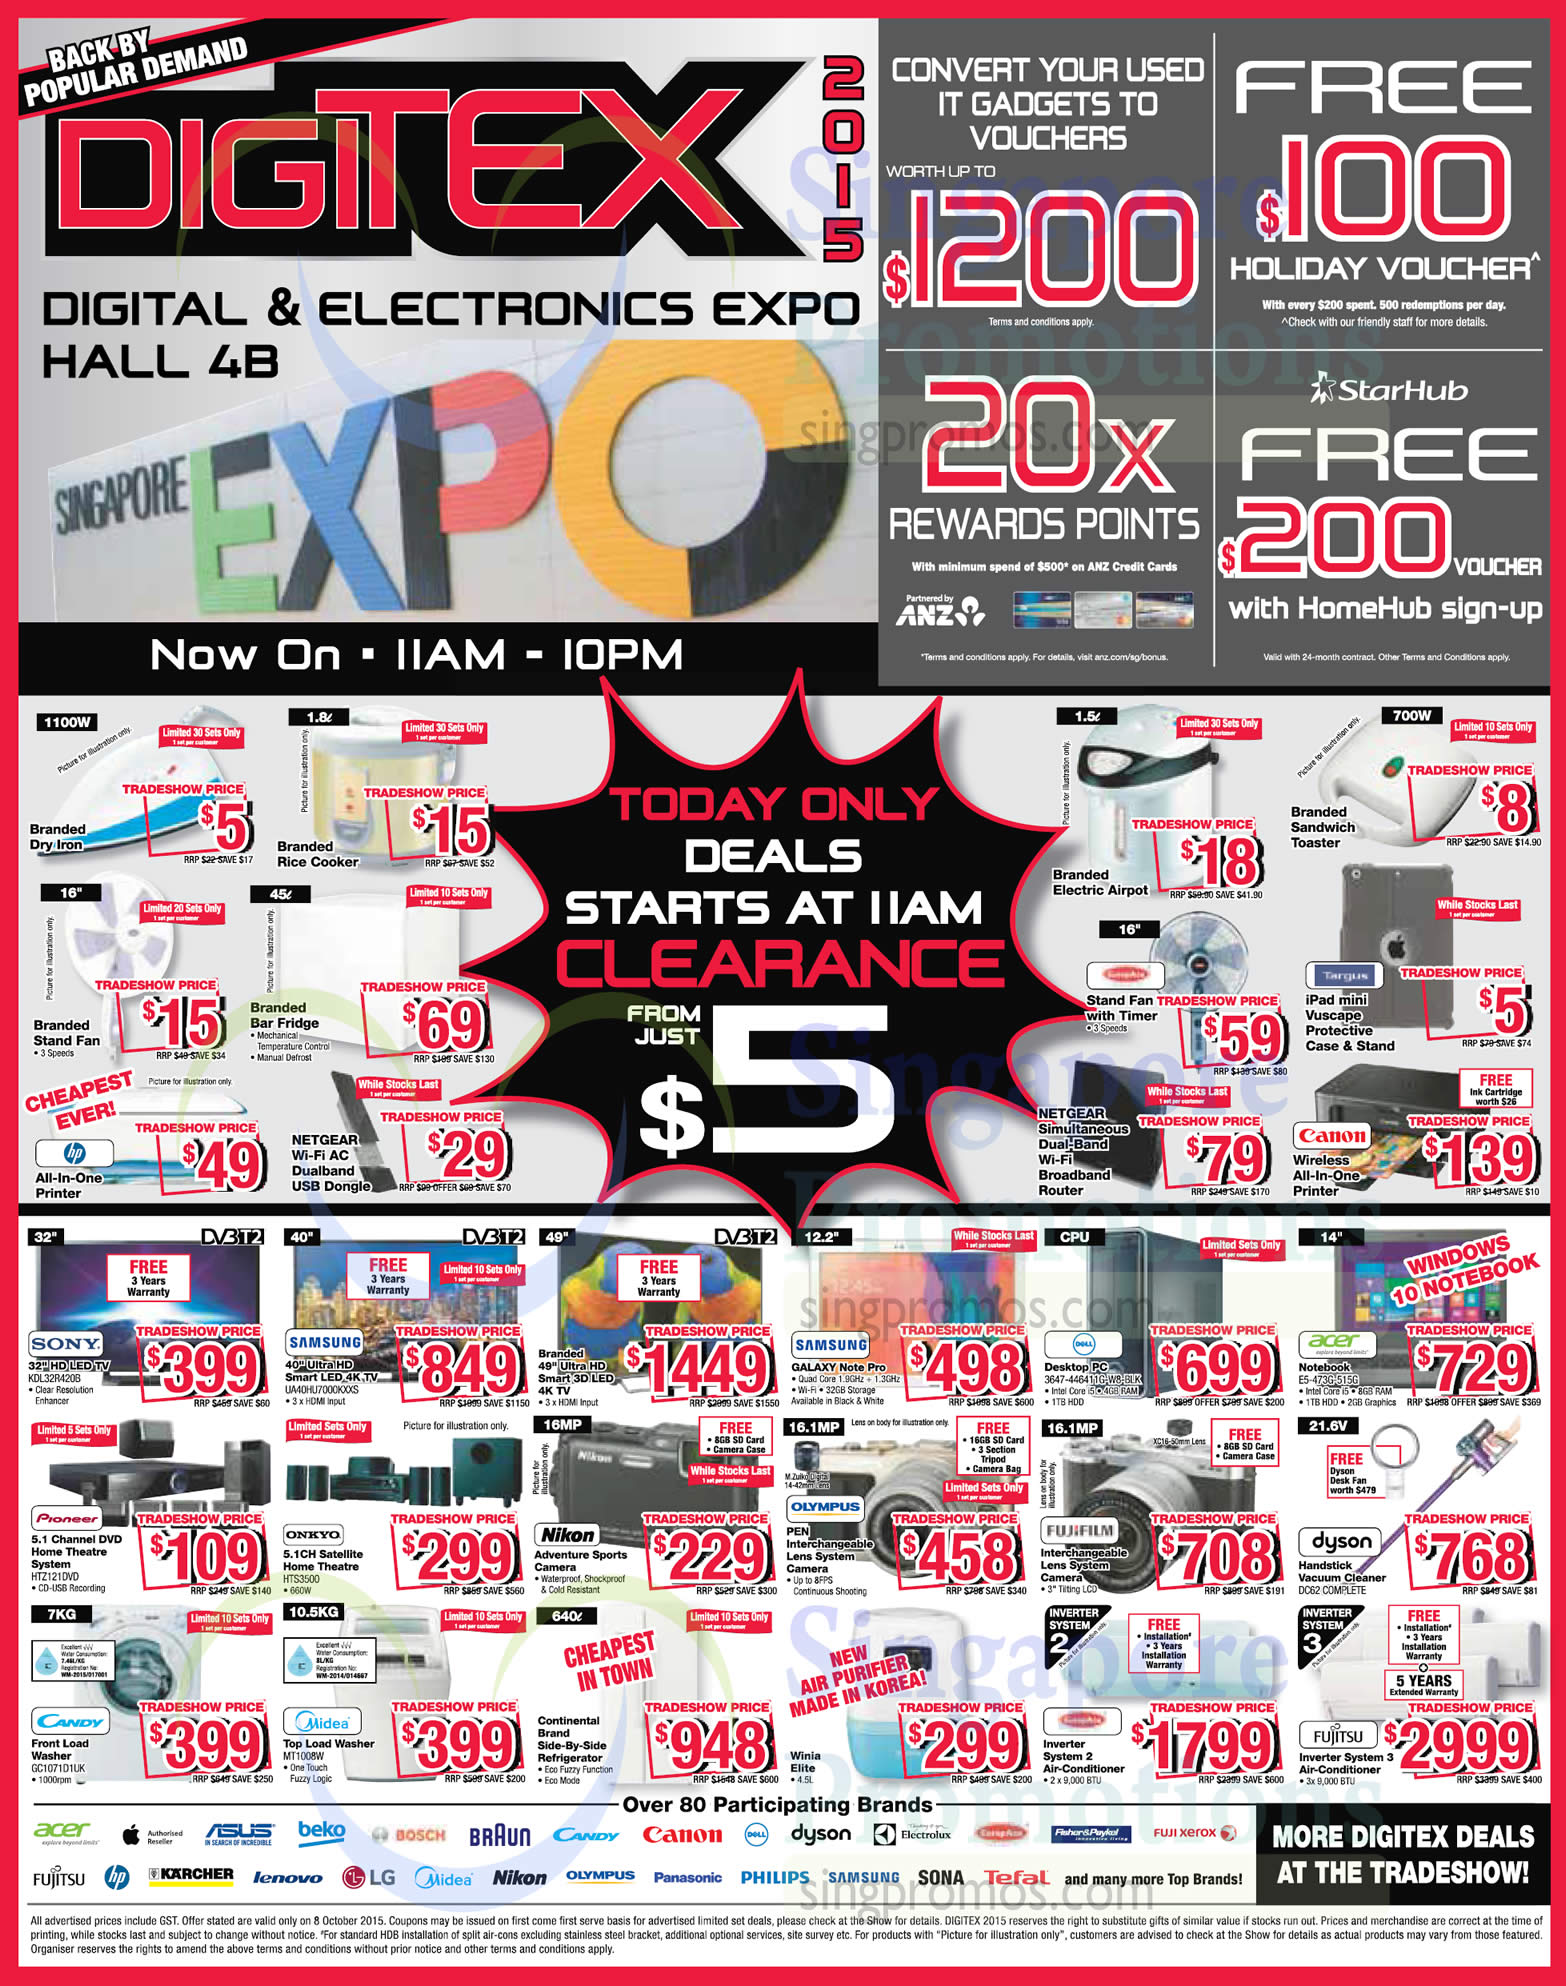 8 Oct Daily Deals Tvs Home Theatre Digital Camera Washer Fans Computers 187 Digitex 2015